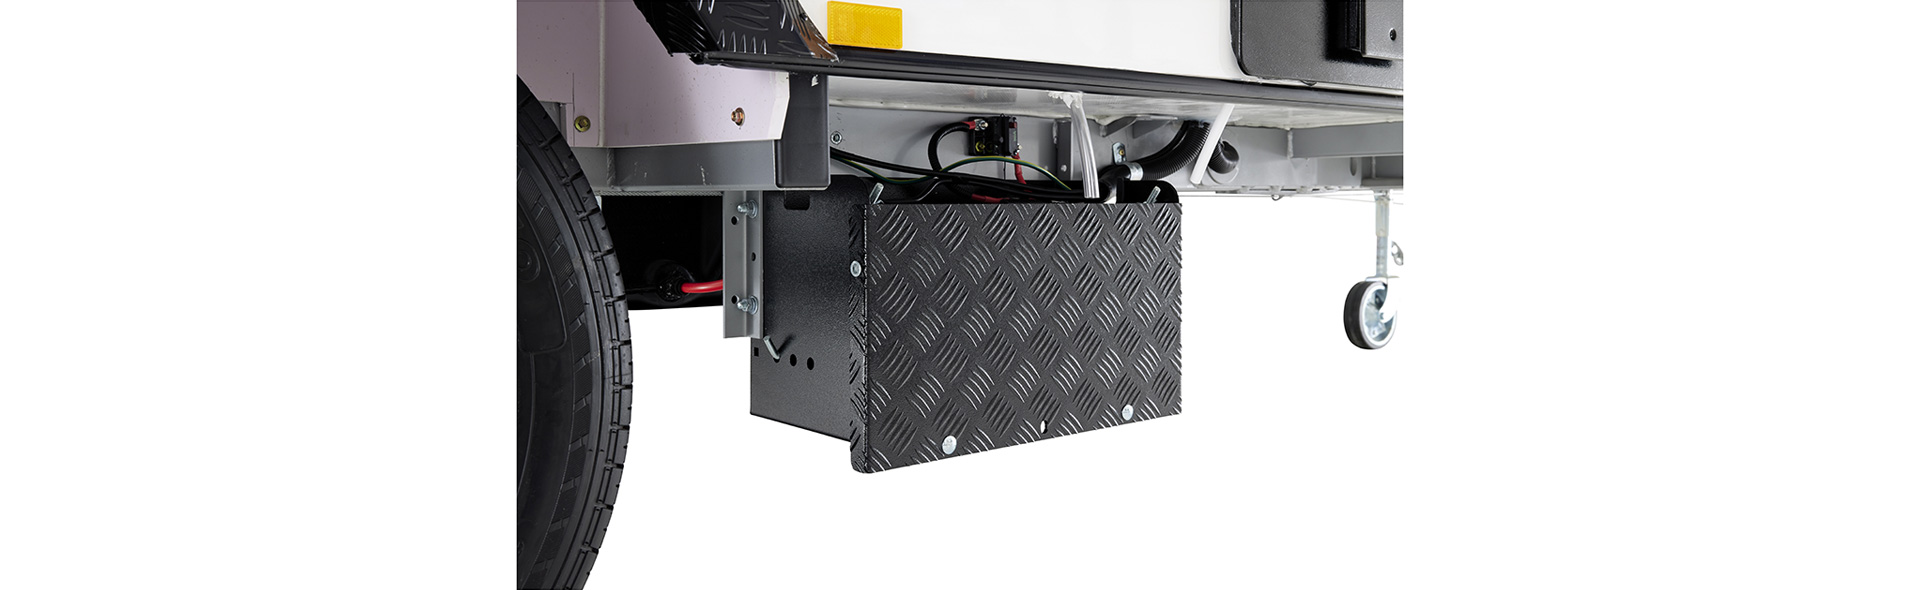 12 volt chassis mounted battery to ensure you have power even if you stop for a break on the side of the road.